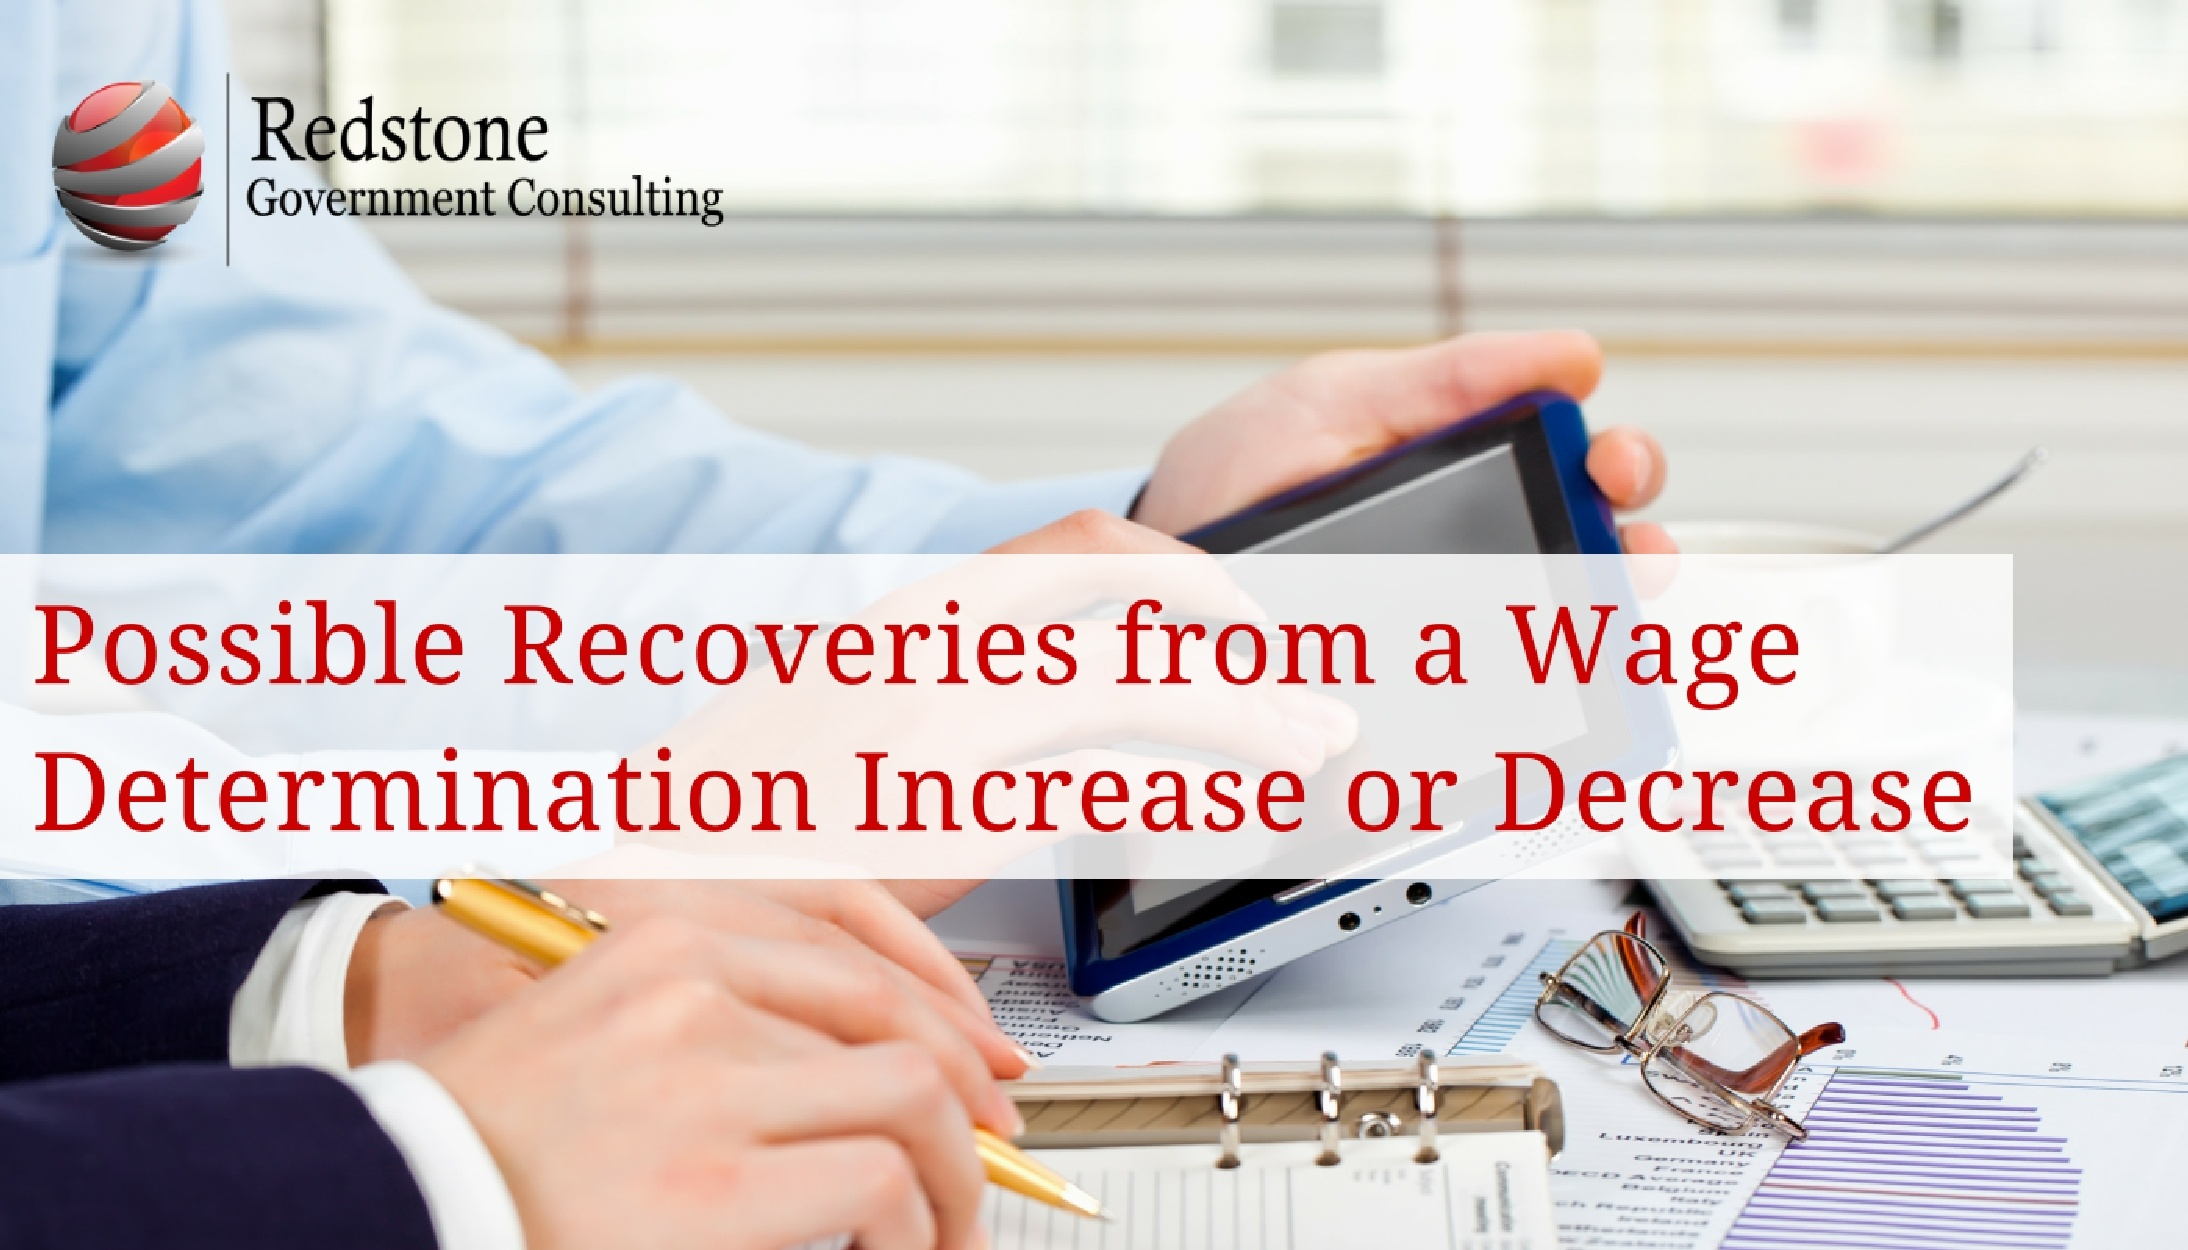 Possible Recoveries from a WD (Wage Determination) Increase/Decrease - Redstone gci